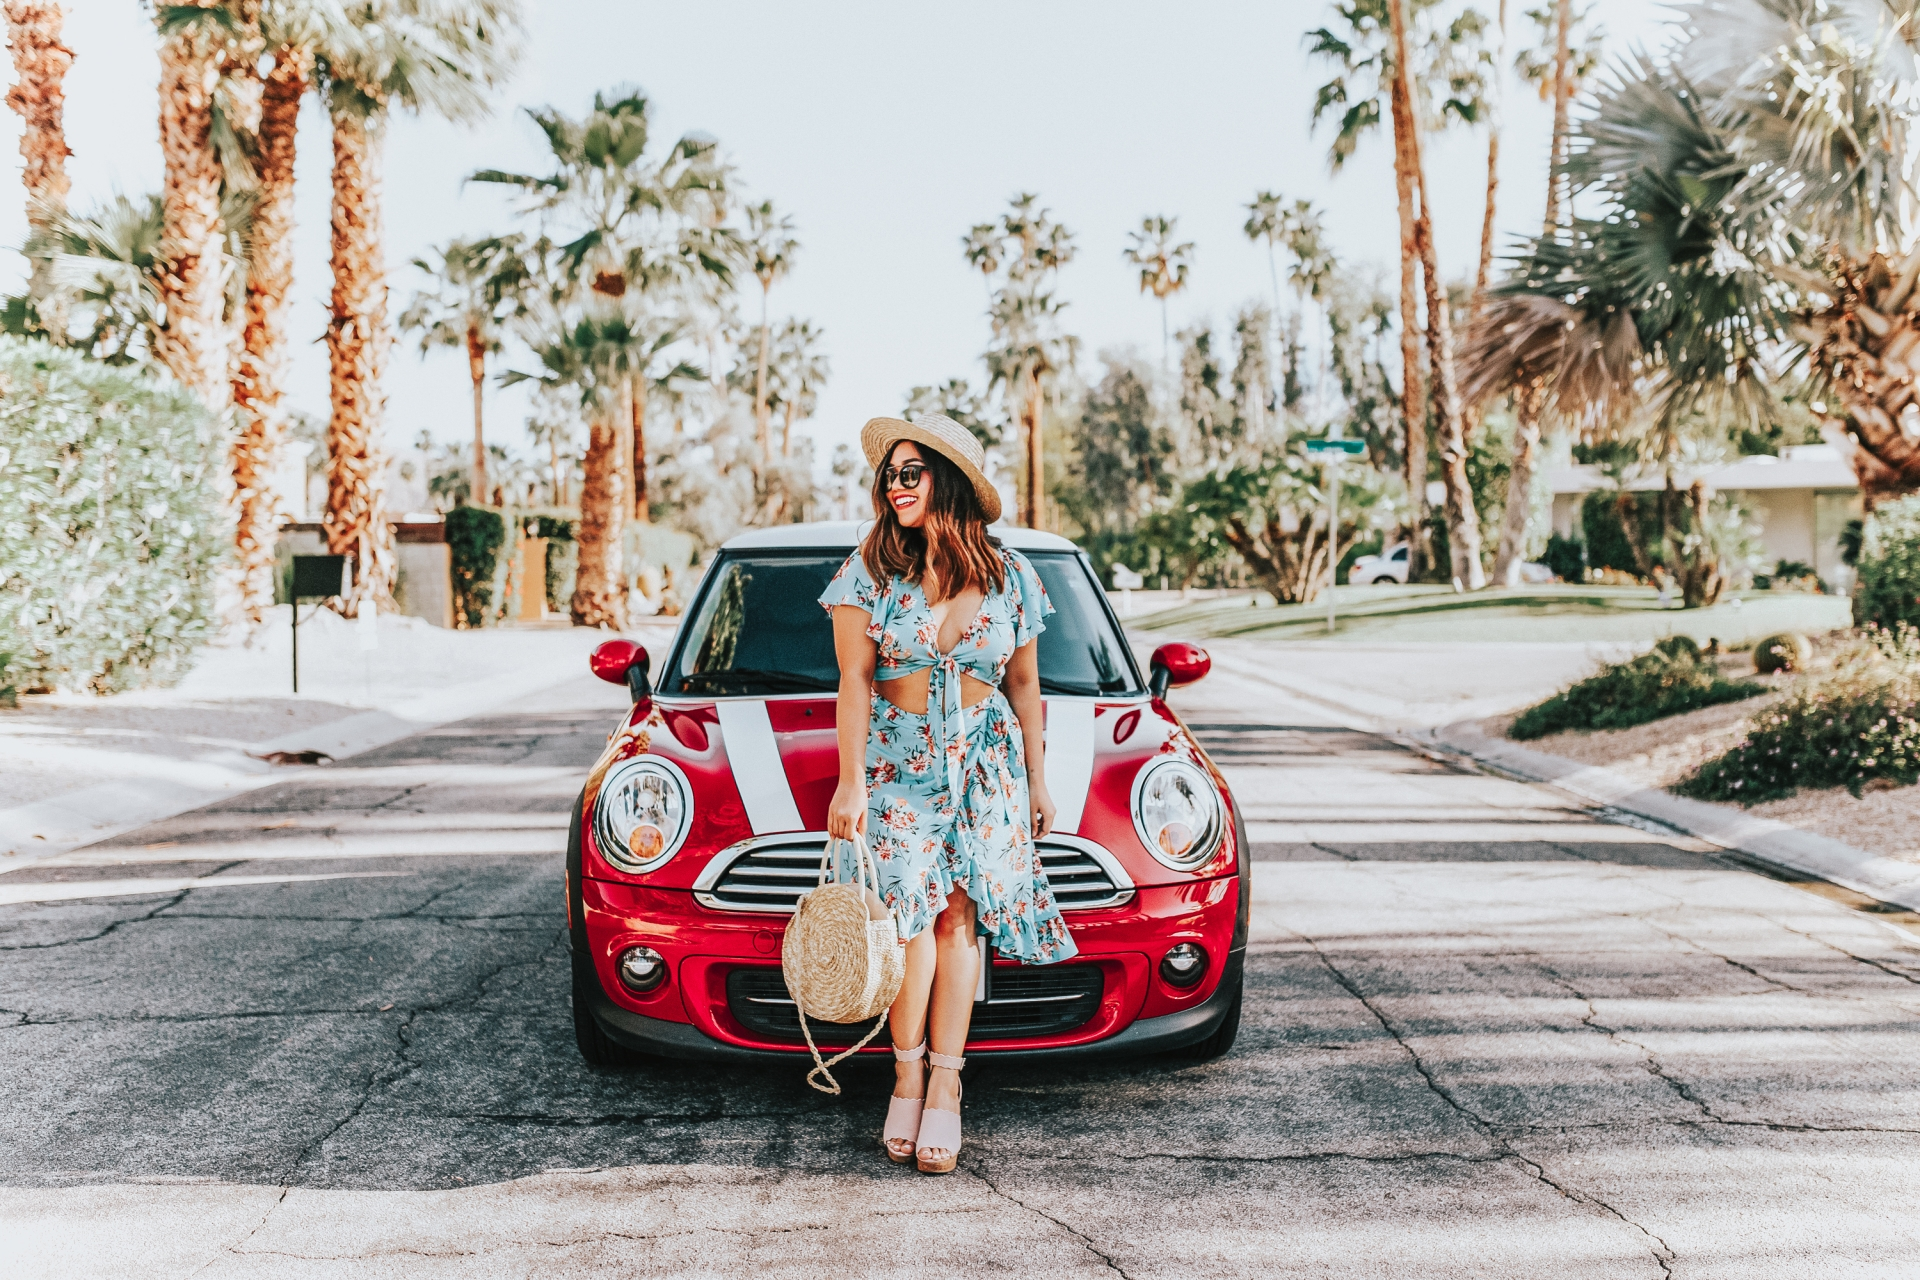 floral tie front crop top and matching wrap skirt set Shein Knot Floral Top & Asymmetrical Ruffle Hem Skirt Set Red Mini Cooper Palm Springs Marc Fisher Scallop Espadrilles Round Circle Straw Bag